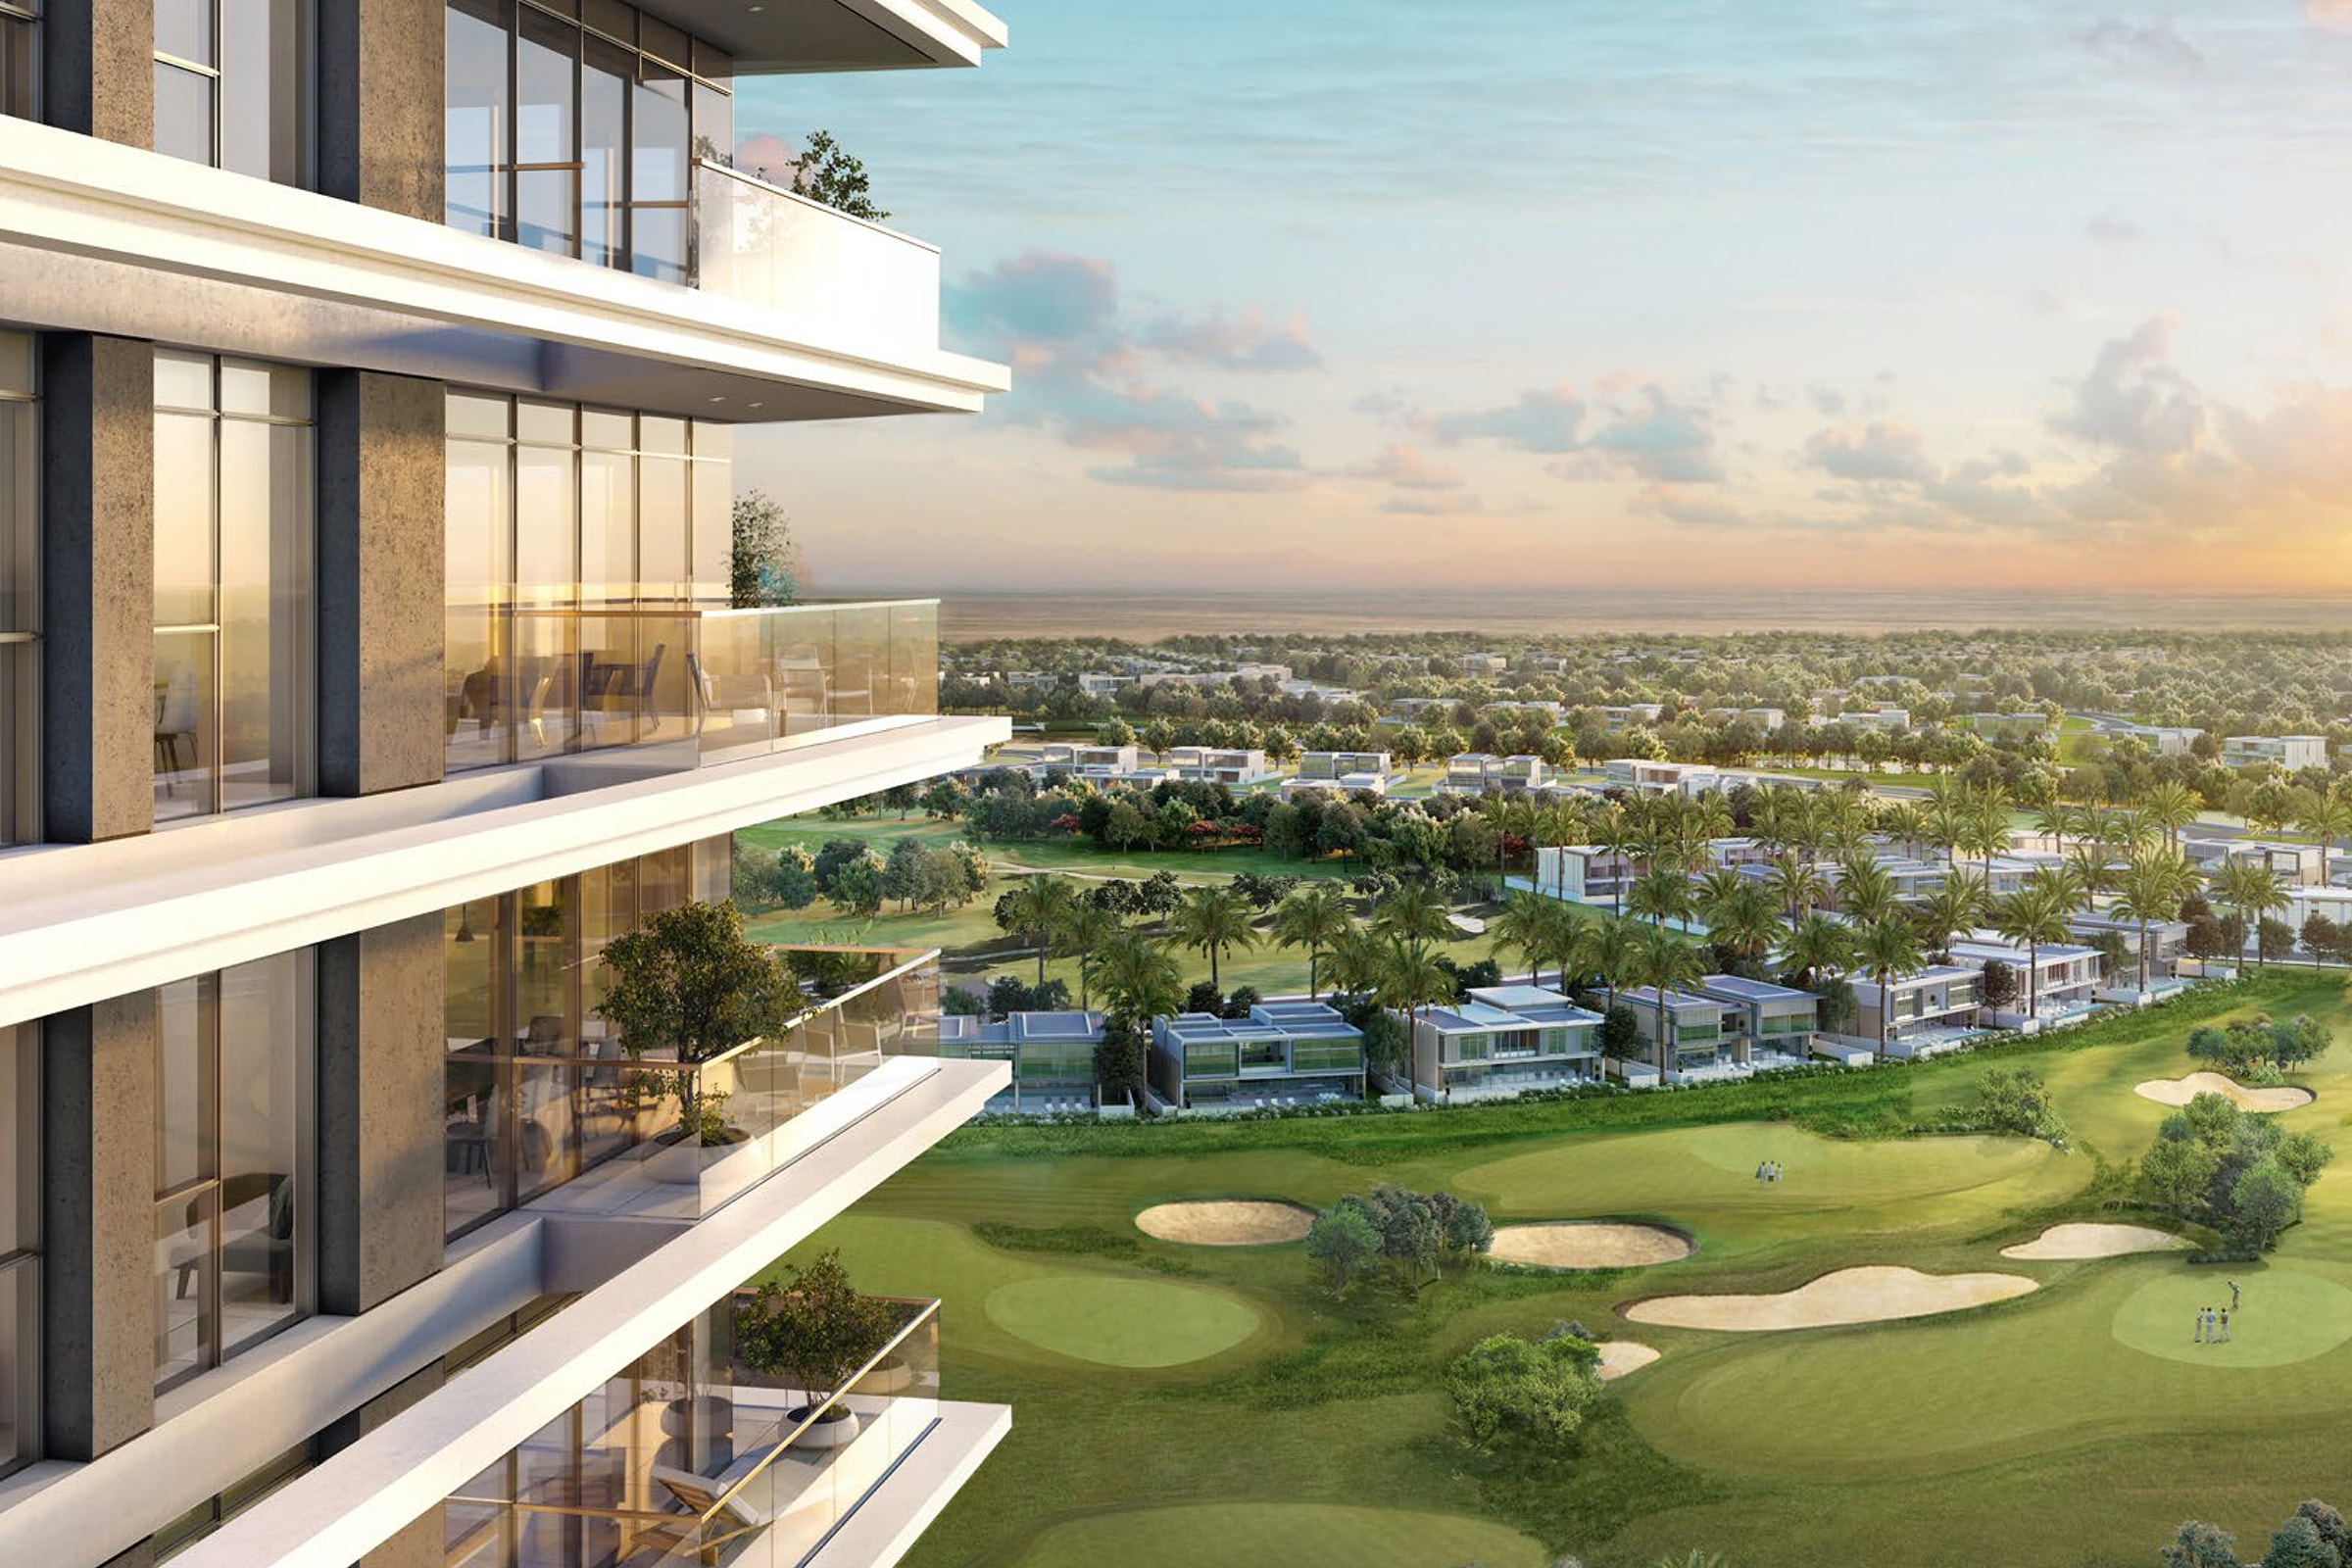 GOLF COURSE APARTMENT ONE BEDROOM